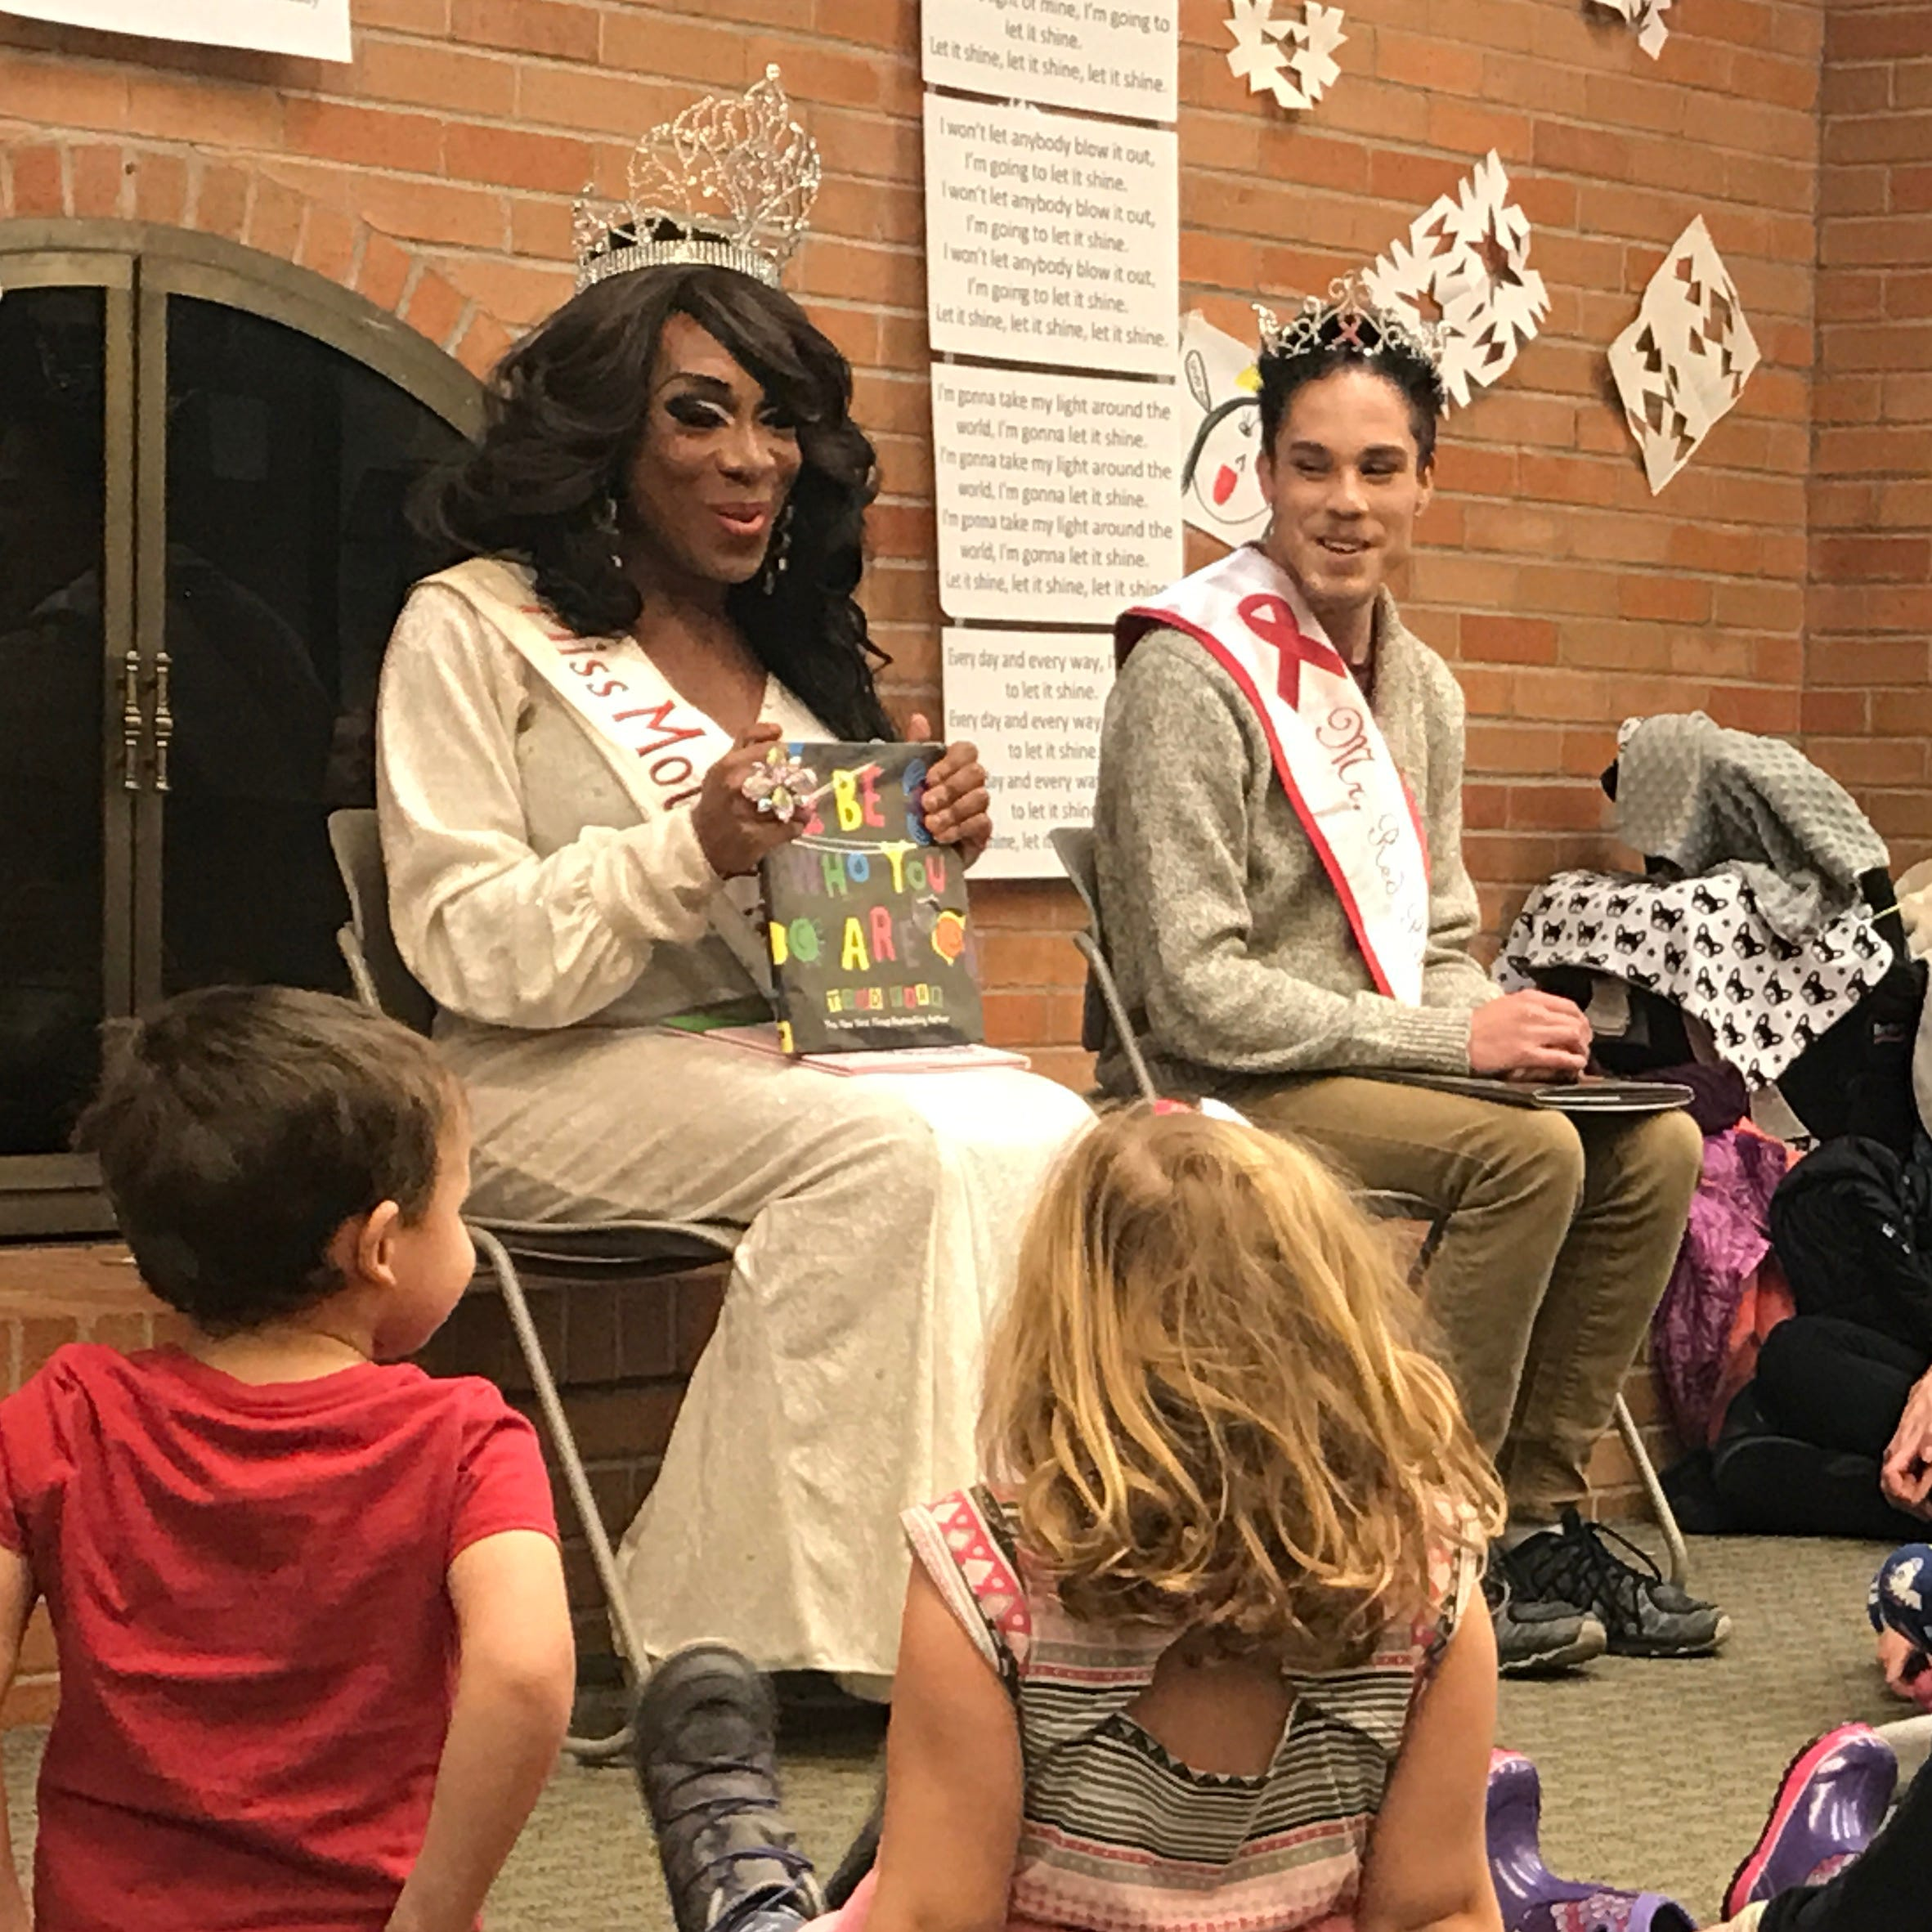 Critics want Huntington Woods Library to end Drag Queen Story Time